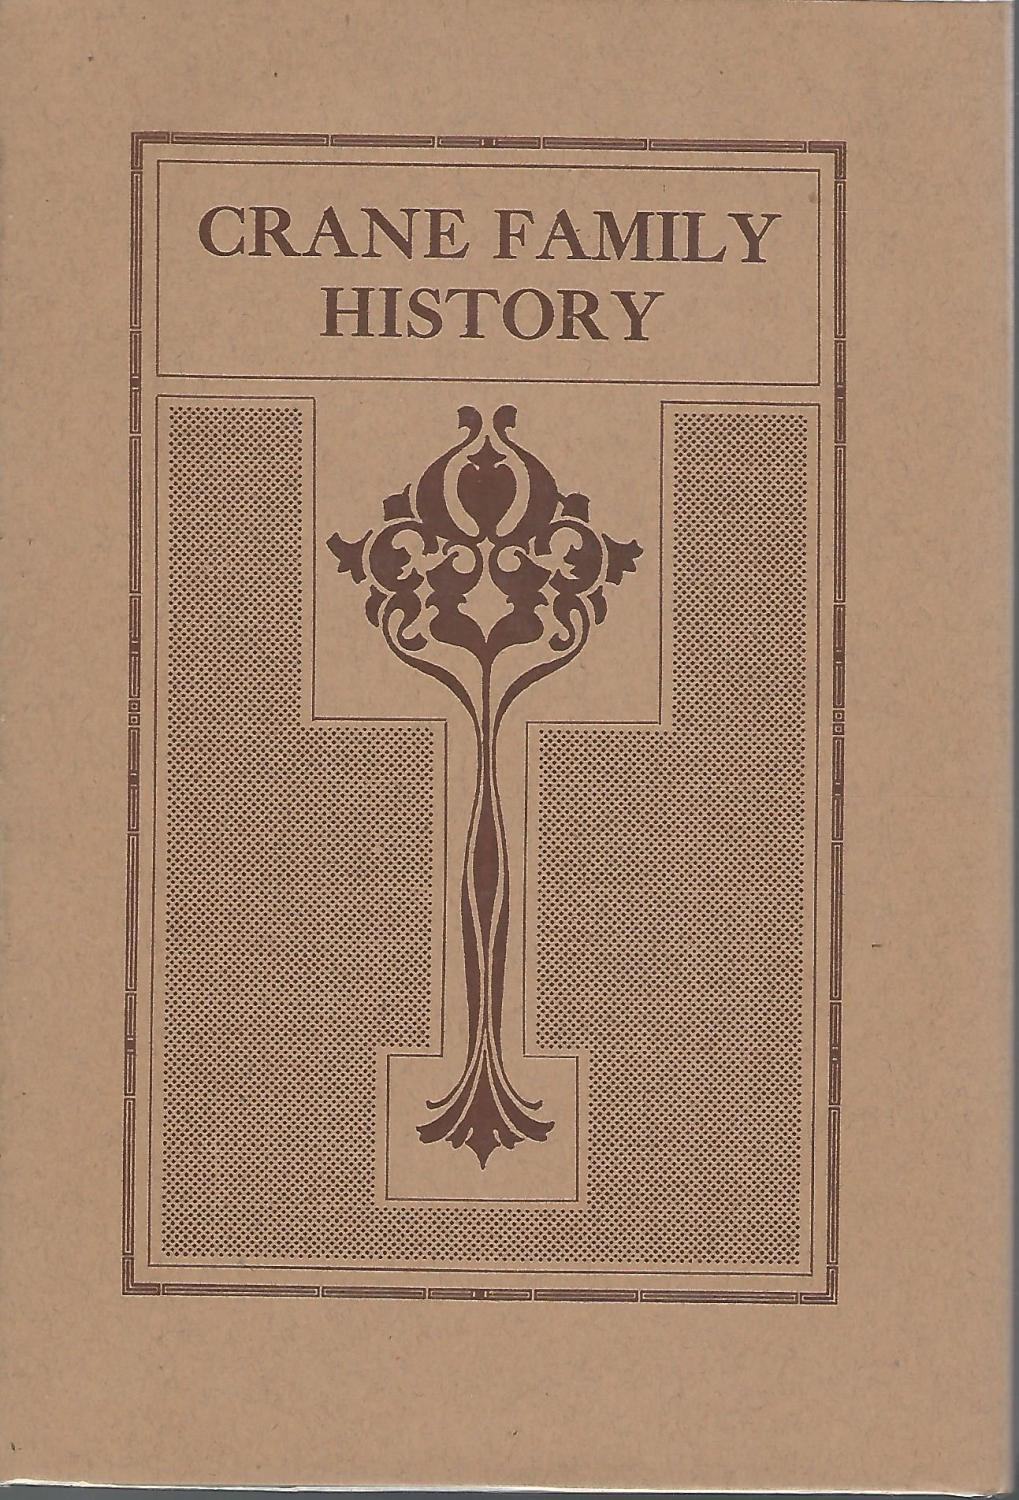 The Crane Family History Crane, Sarah Schenck Very Good Hardcover First Edition, First Printing; dj in mylar; 67 clean, unmarked pages. History of the Crane family of Dayton, Ohio and New York, as told by Sarah Schen